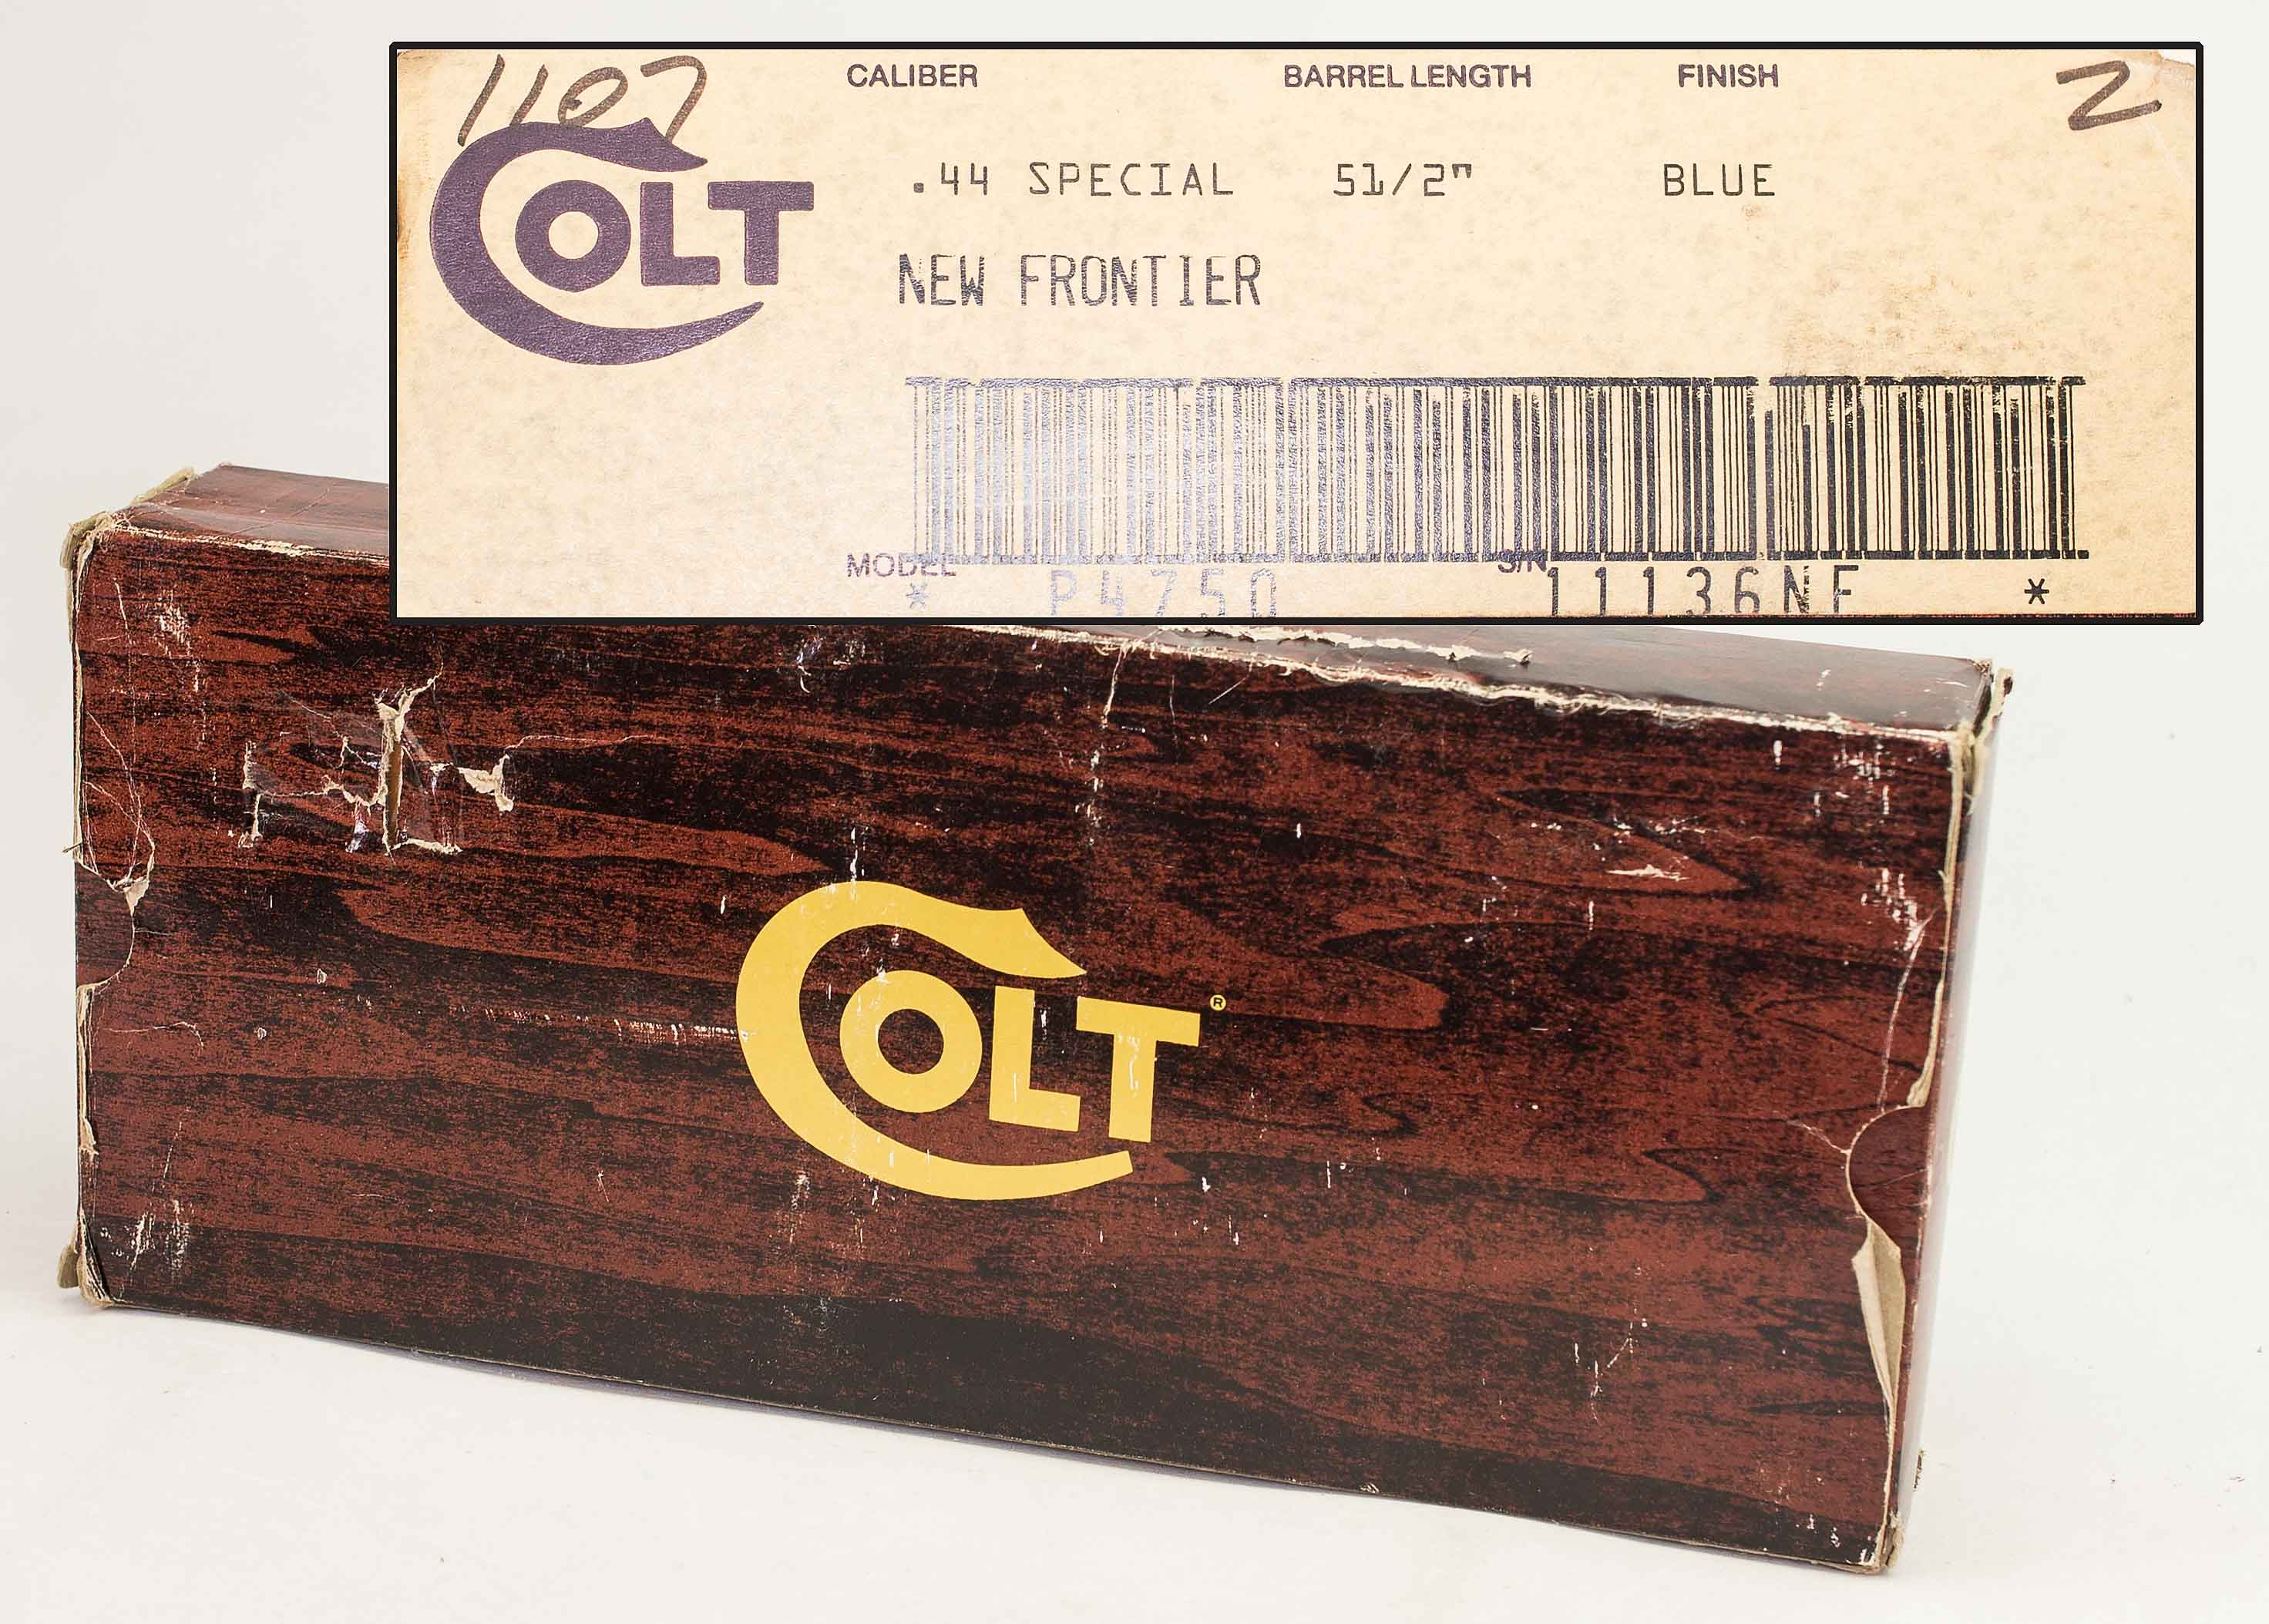 COLT NEW FRONTIER – NIB – 44 SPECIAL (Auction ID: 12487908